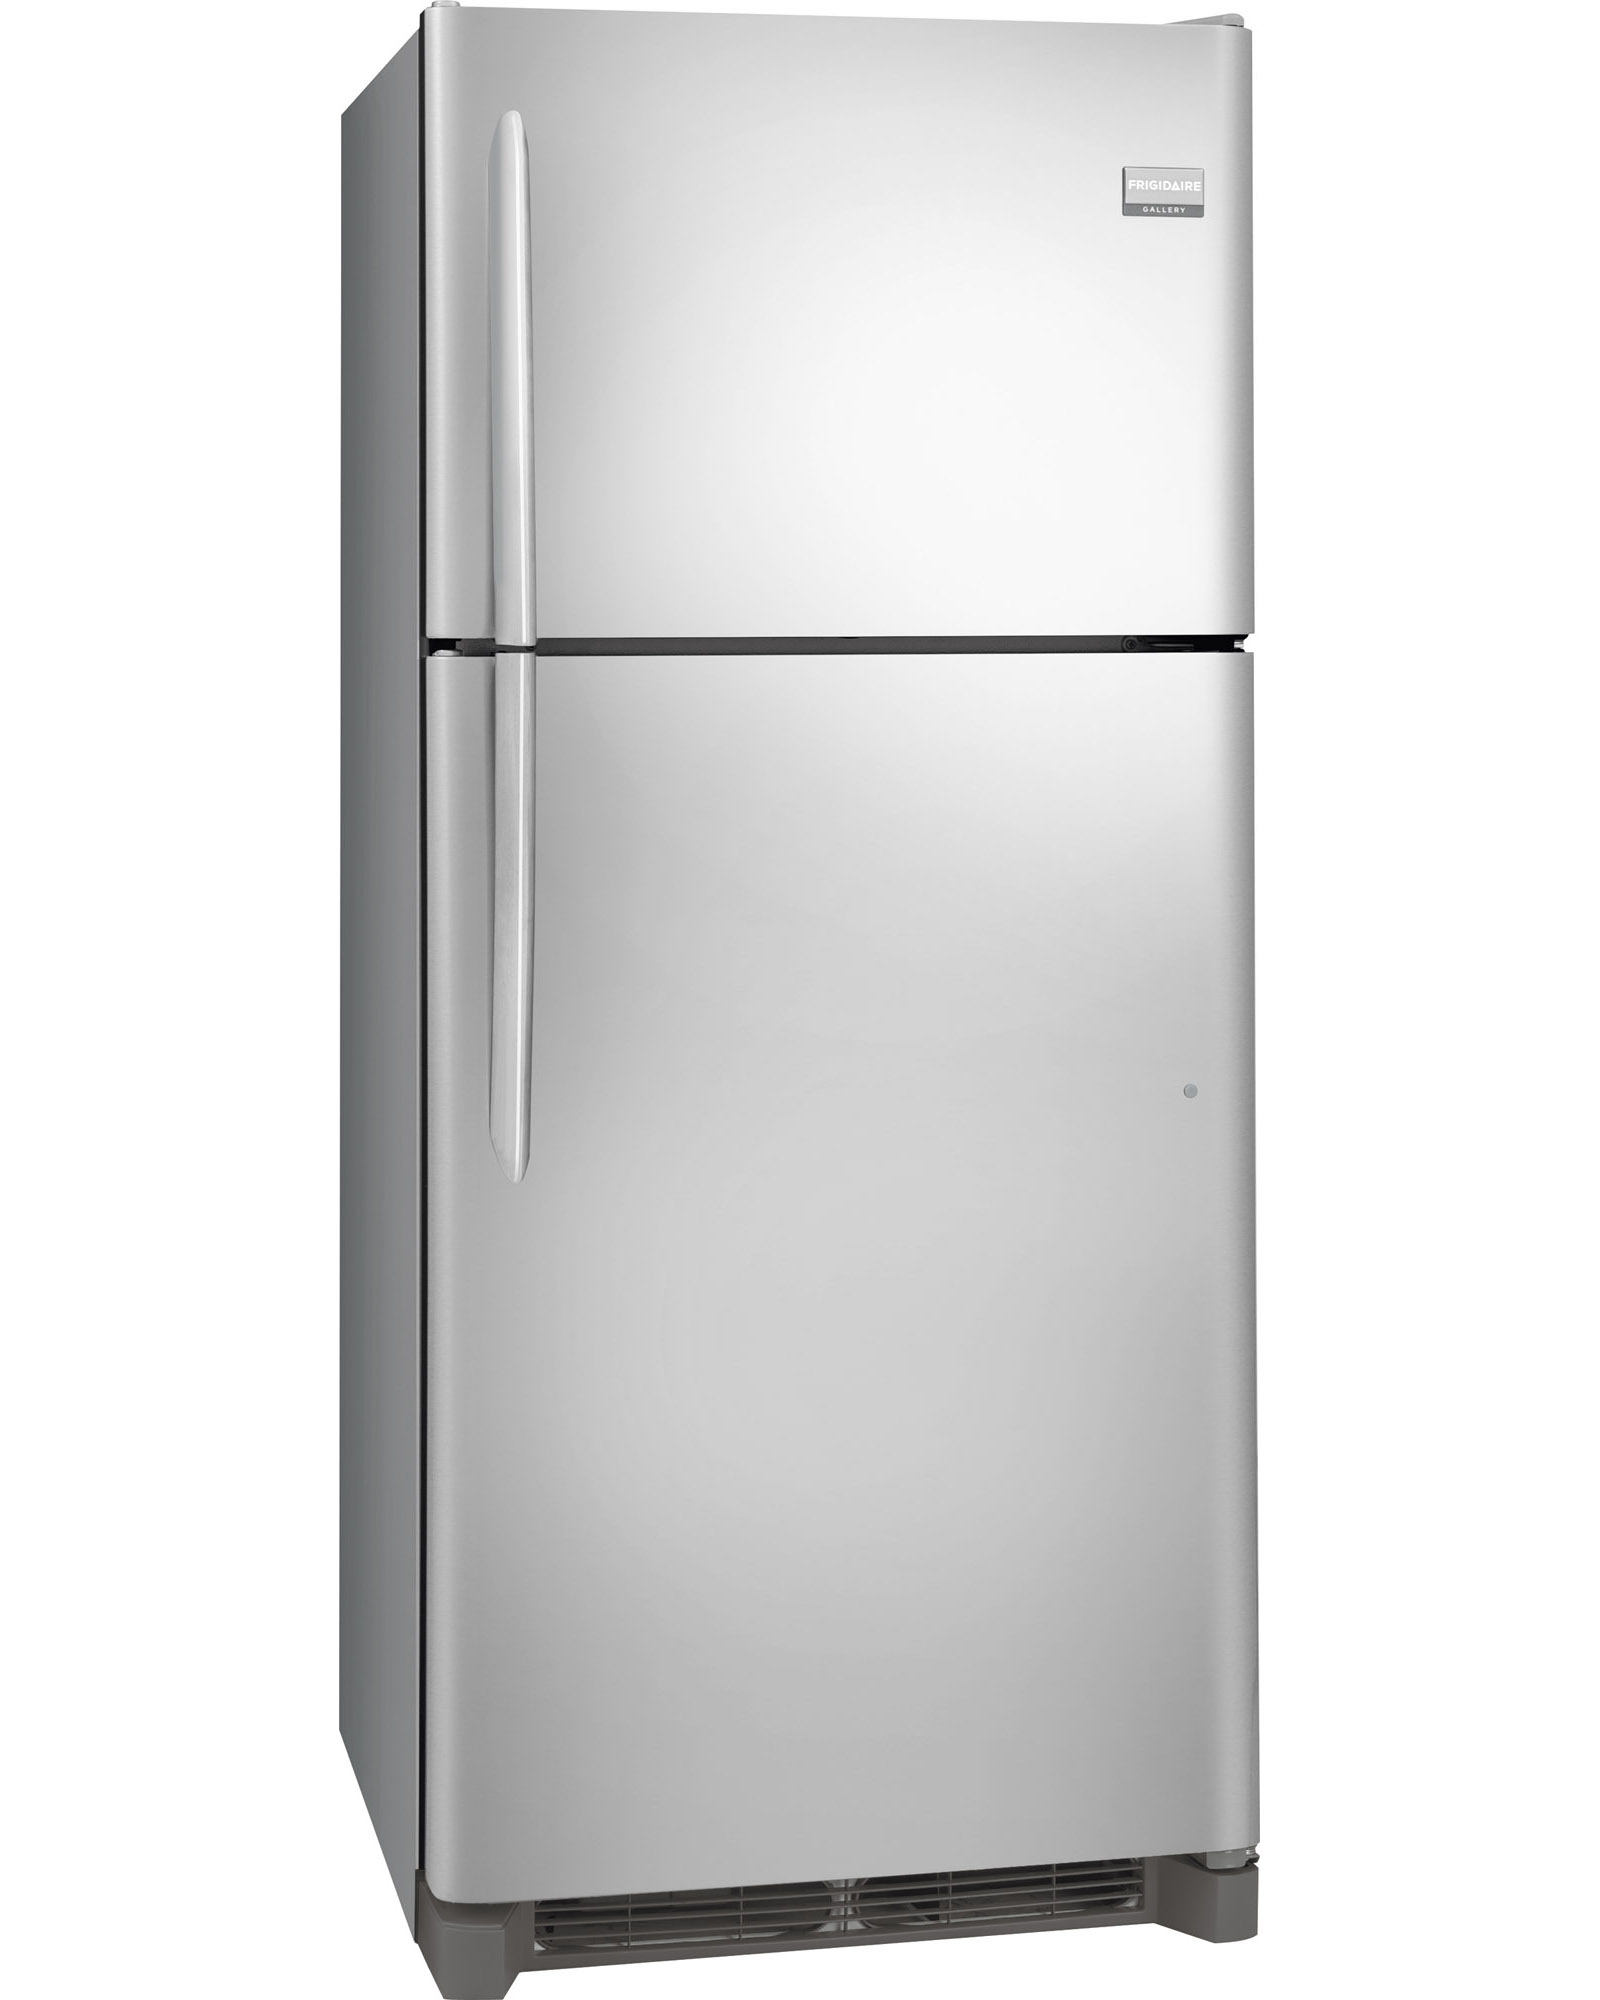 Frigidaire Gallery FGHT2046QF 20.4 cu. ft. Top Freezer Refrigerator - Stainless Steel